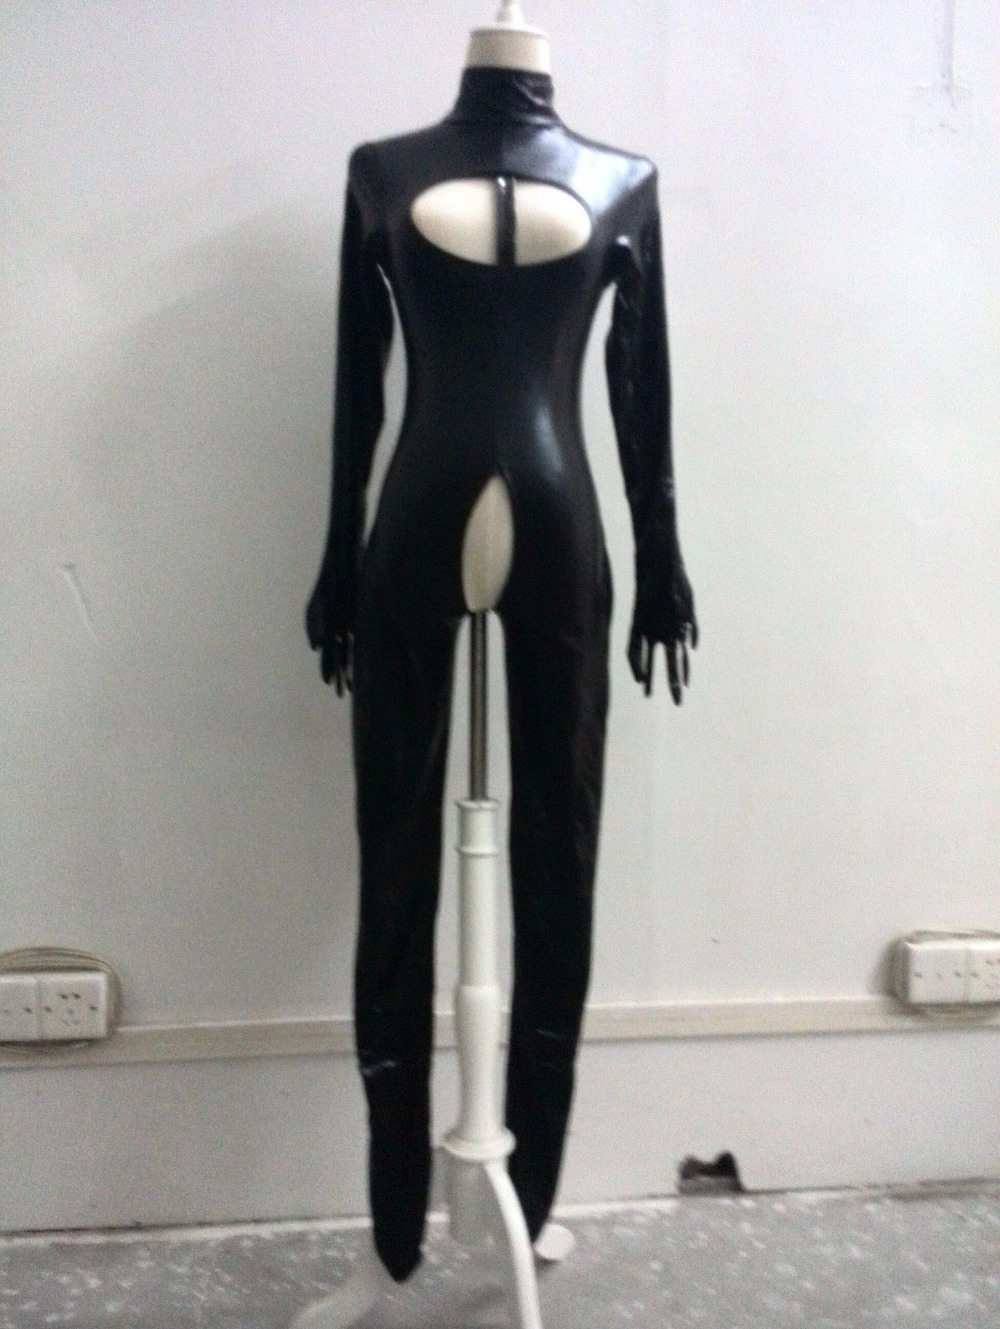 jump suit hot sexy Lingerie Faux Leather PVC Erotic clothing Costumes Open Bust Teddies Bodysuits Corsets Bustiers latex erotic